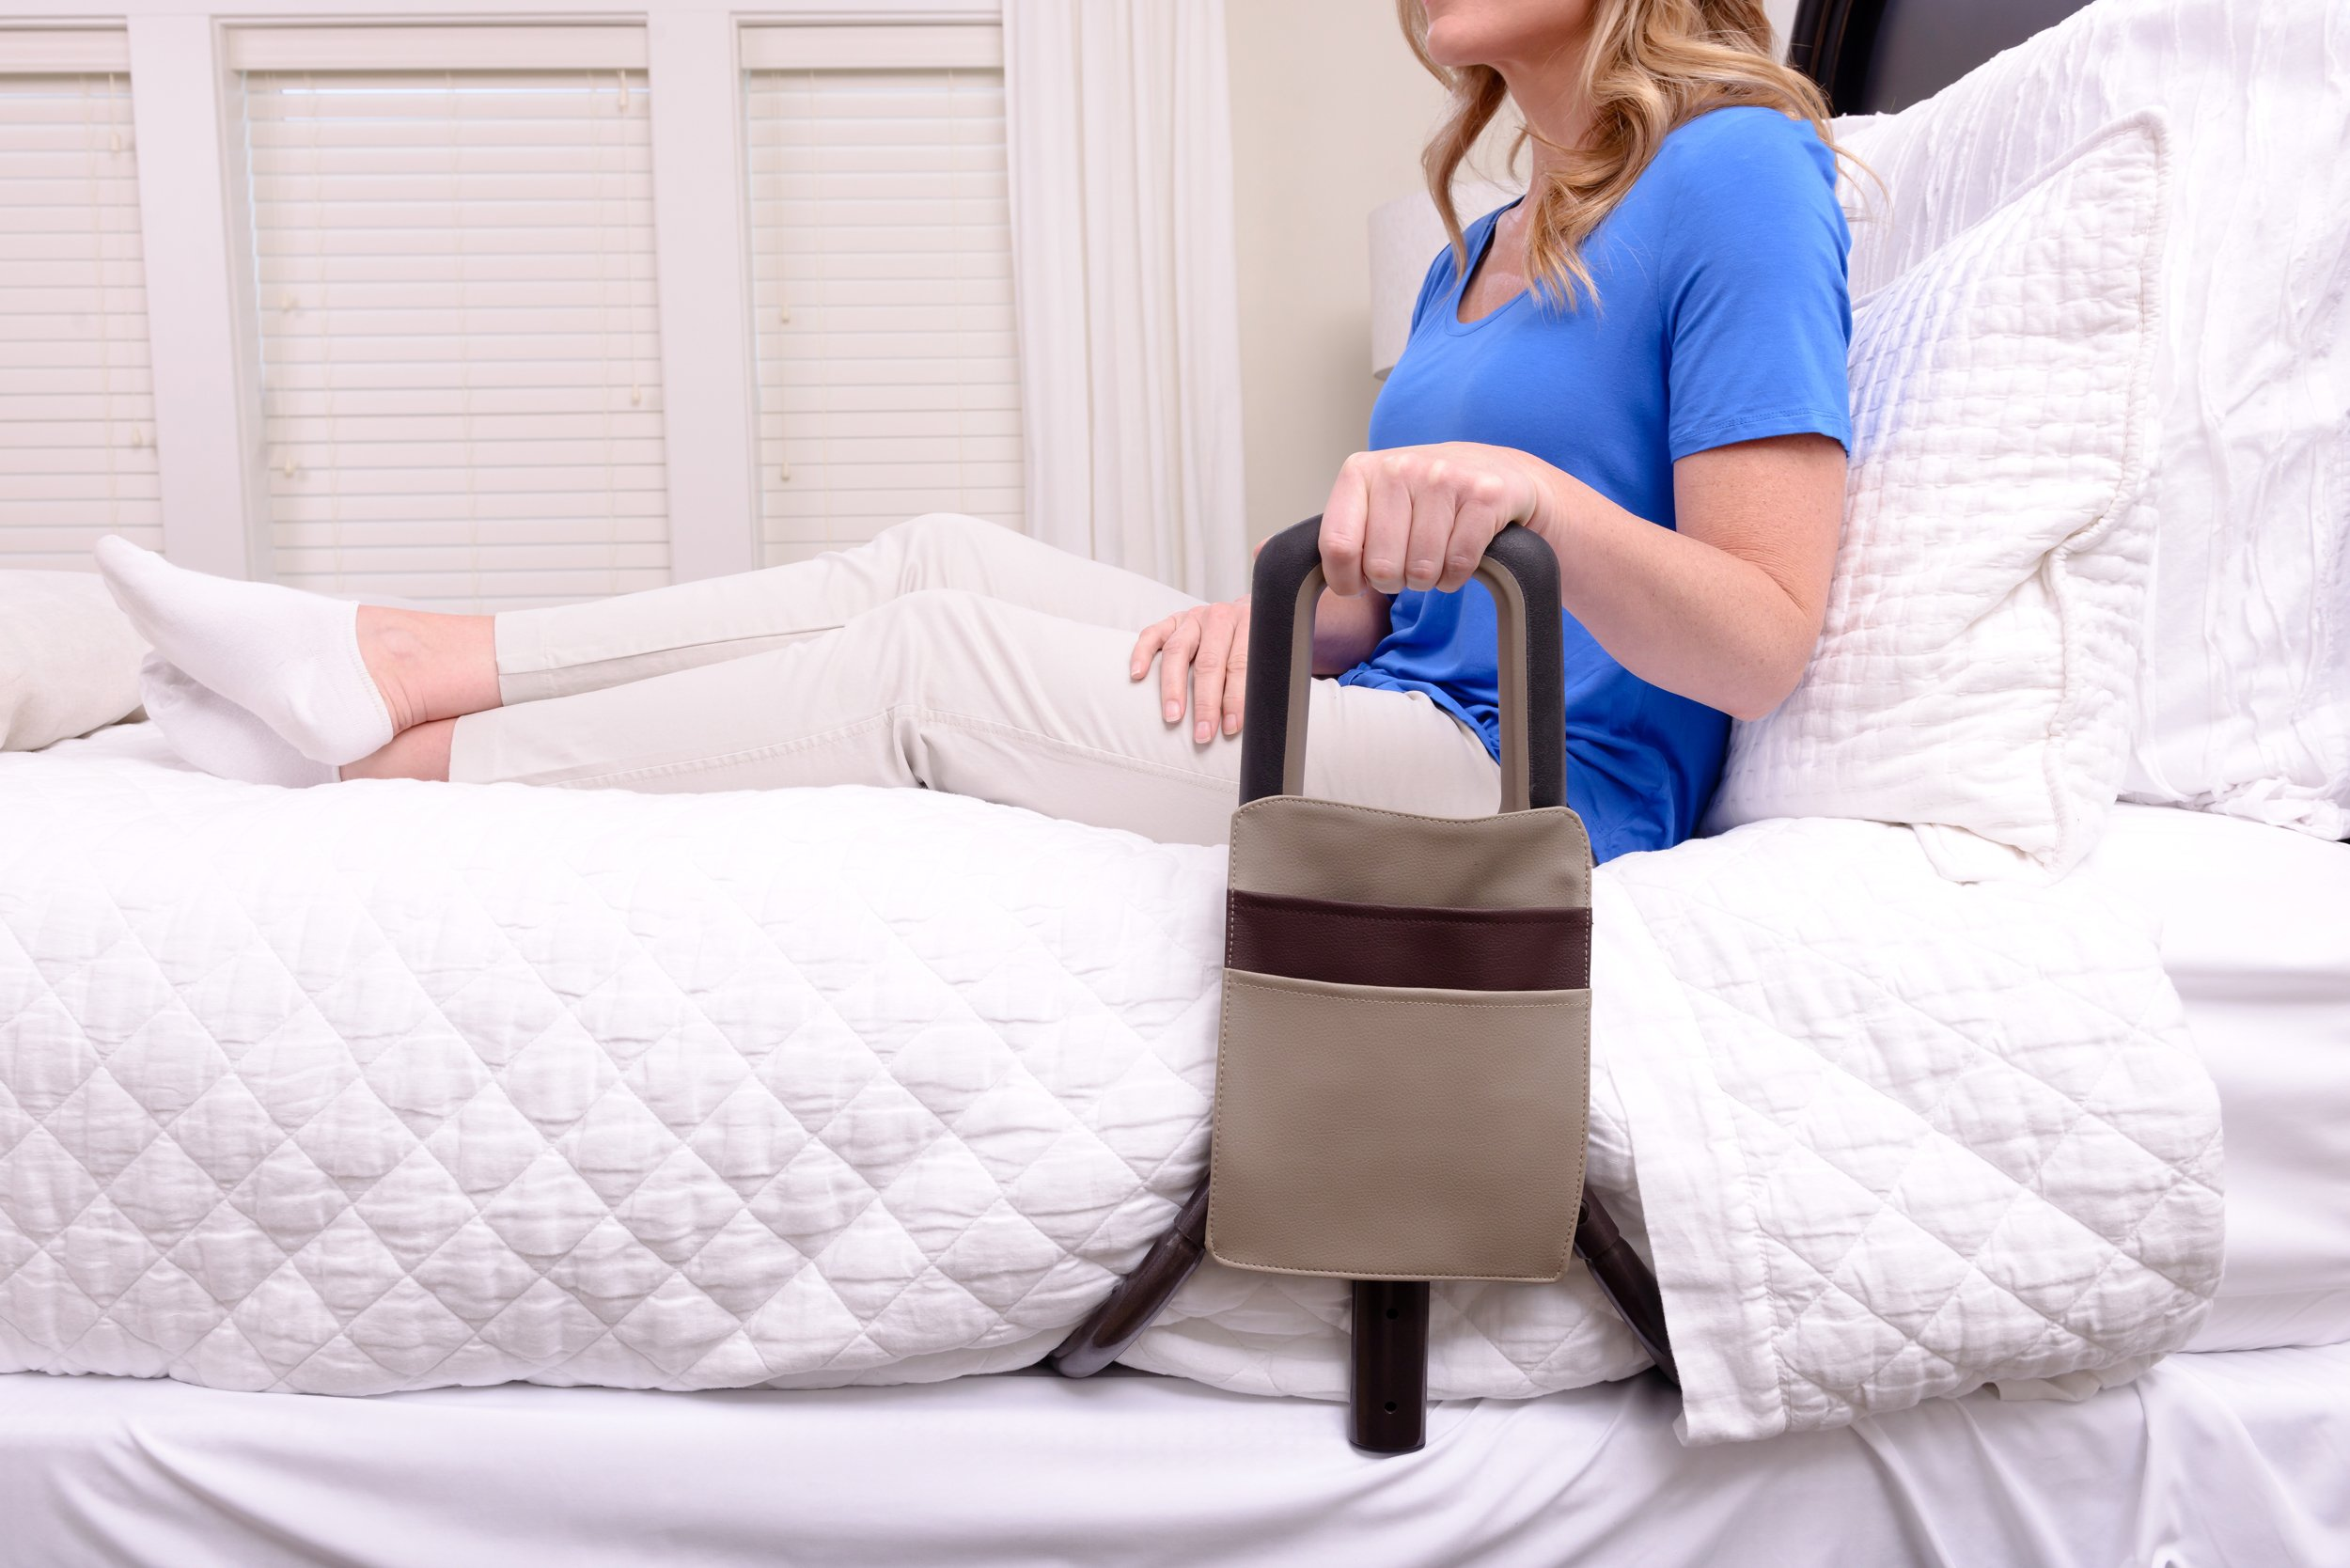 Signature Life Confidence Bed Handle - Elderly Safety Bed Rail & Mobility Support Cane + Organizer Pouch by Signature Life (Image #7)